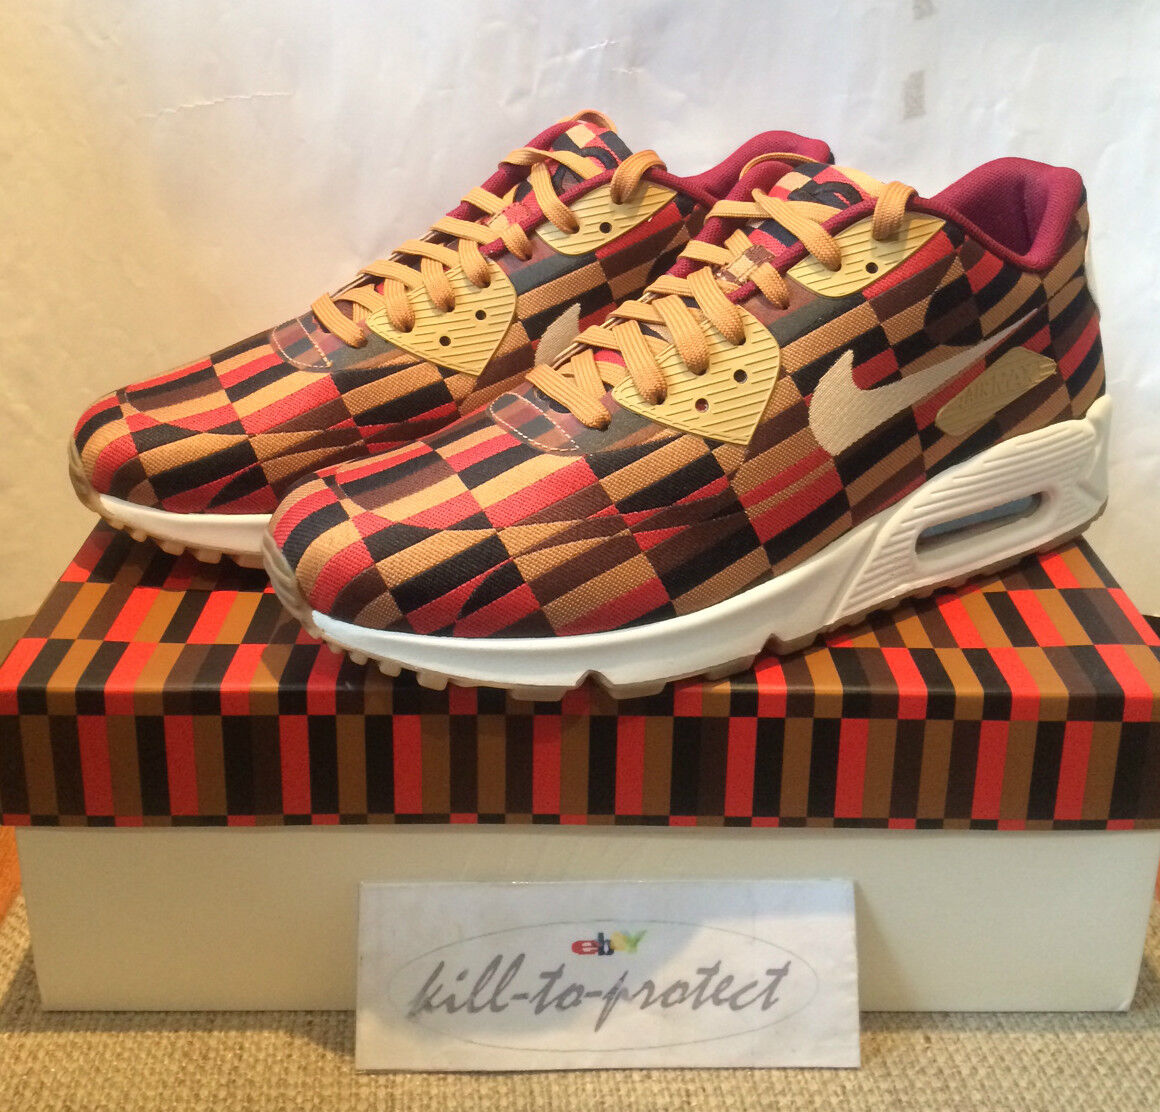 Nike air max 90 roundel london underground broccato 651322-106 2013